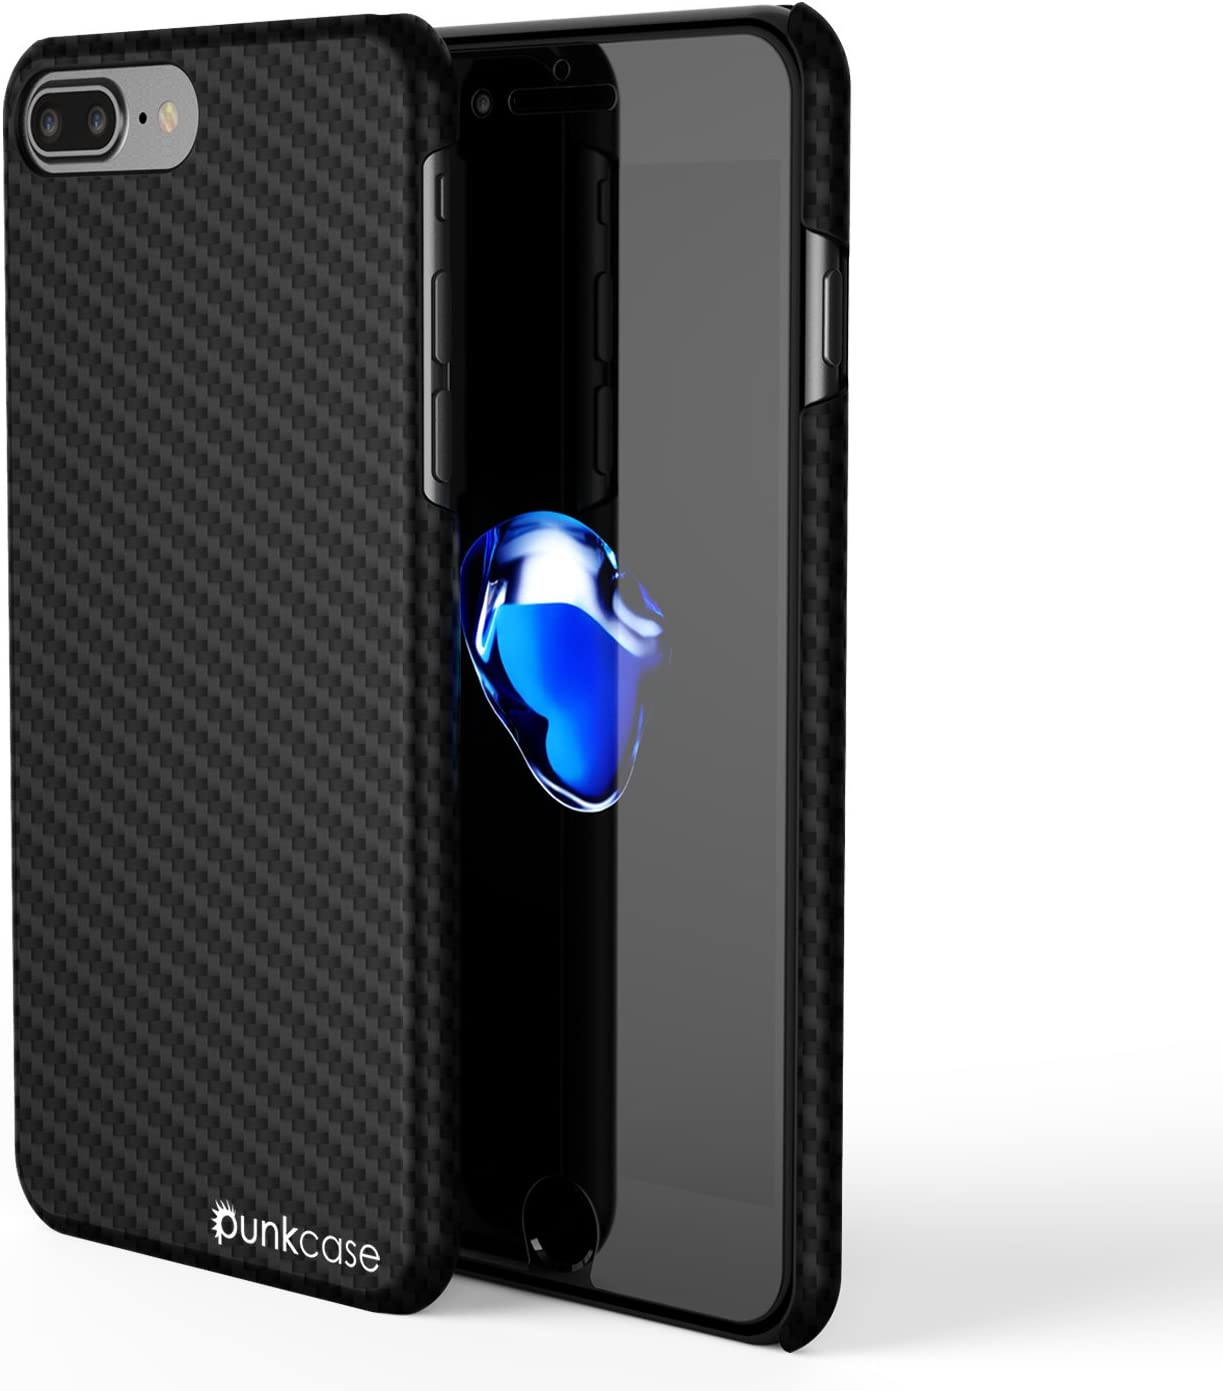 iPhone 7 Plus Case, Punkcase CarbonShield, Heavy Duty & Ultra Thin 2 Piece Dual Layer PU Leather Cover [Shockproof][Non Slip] with PUNKSHIELD Screen Protector for Apple iPhone 7s+ (Jet Black)